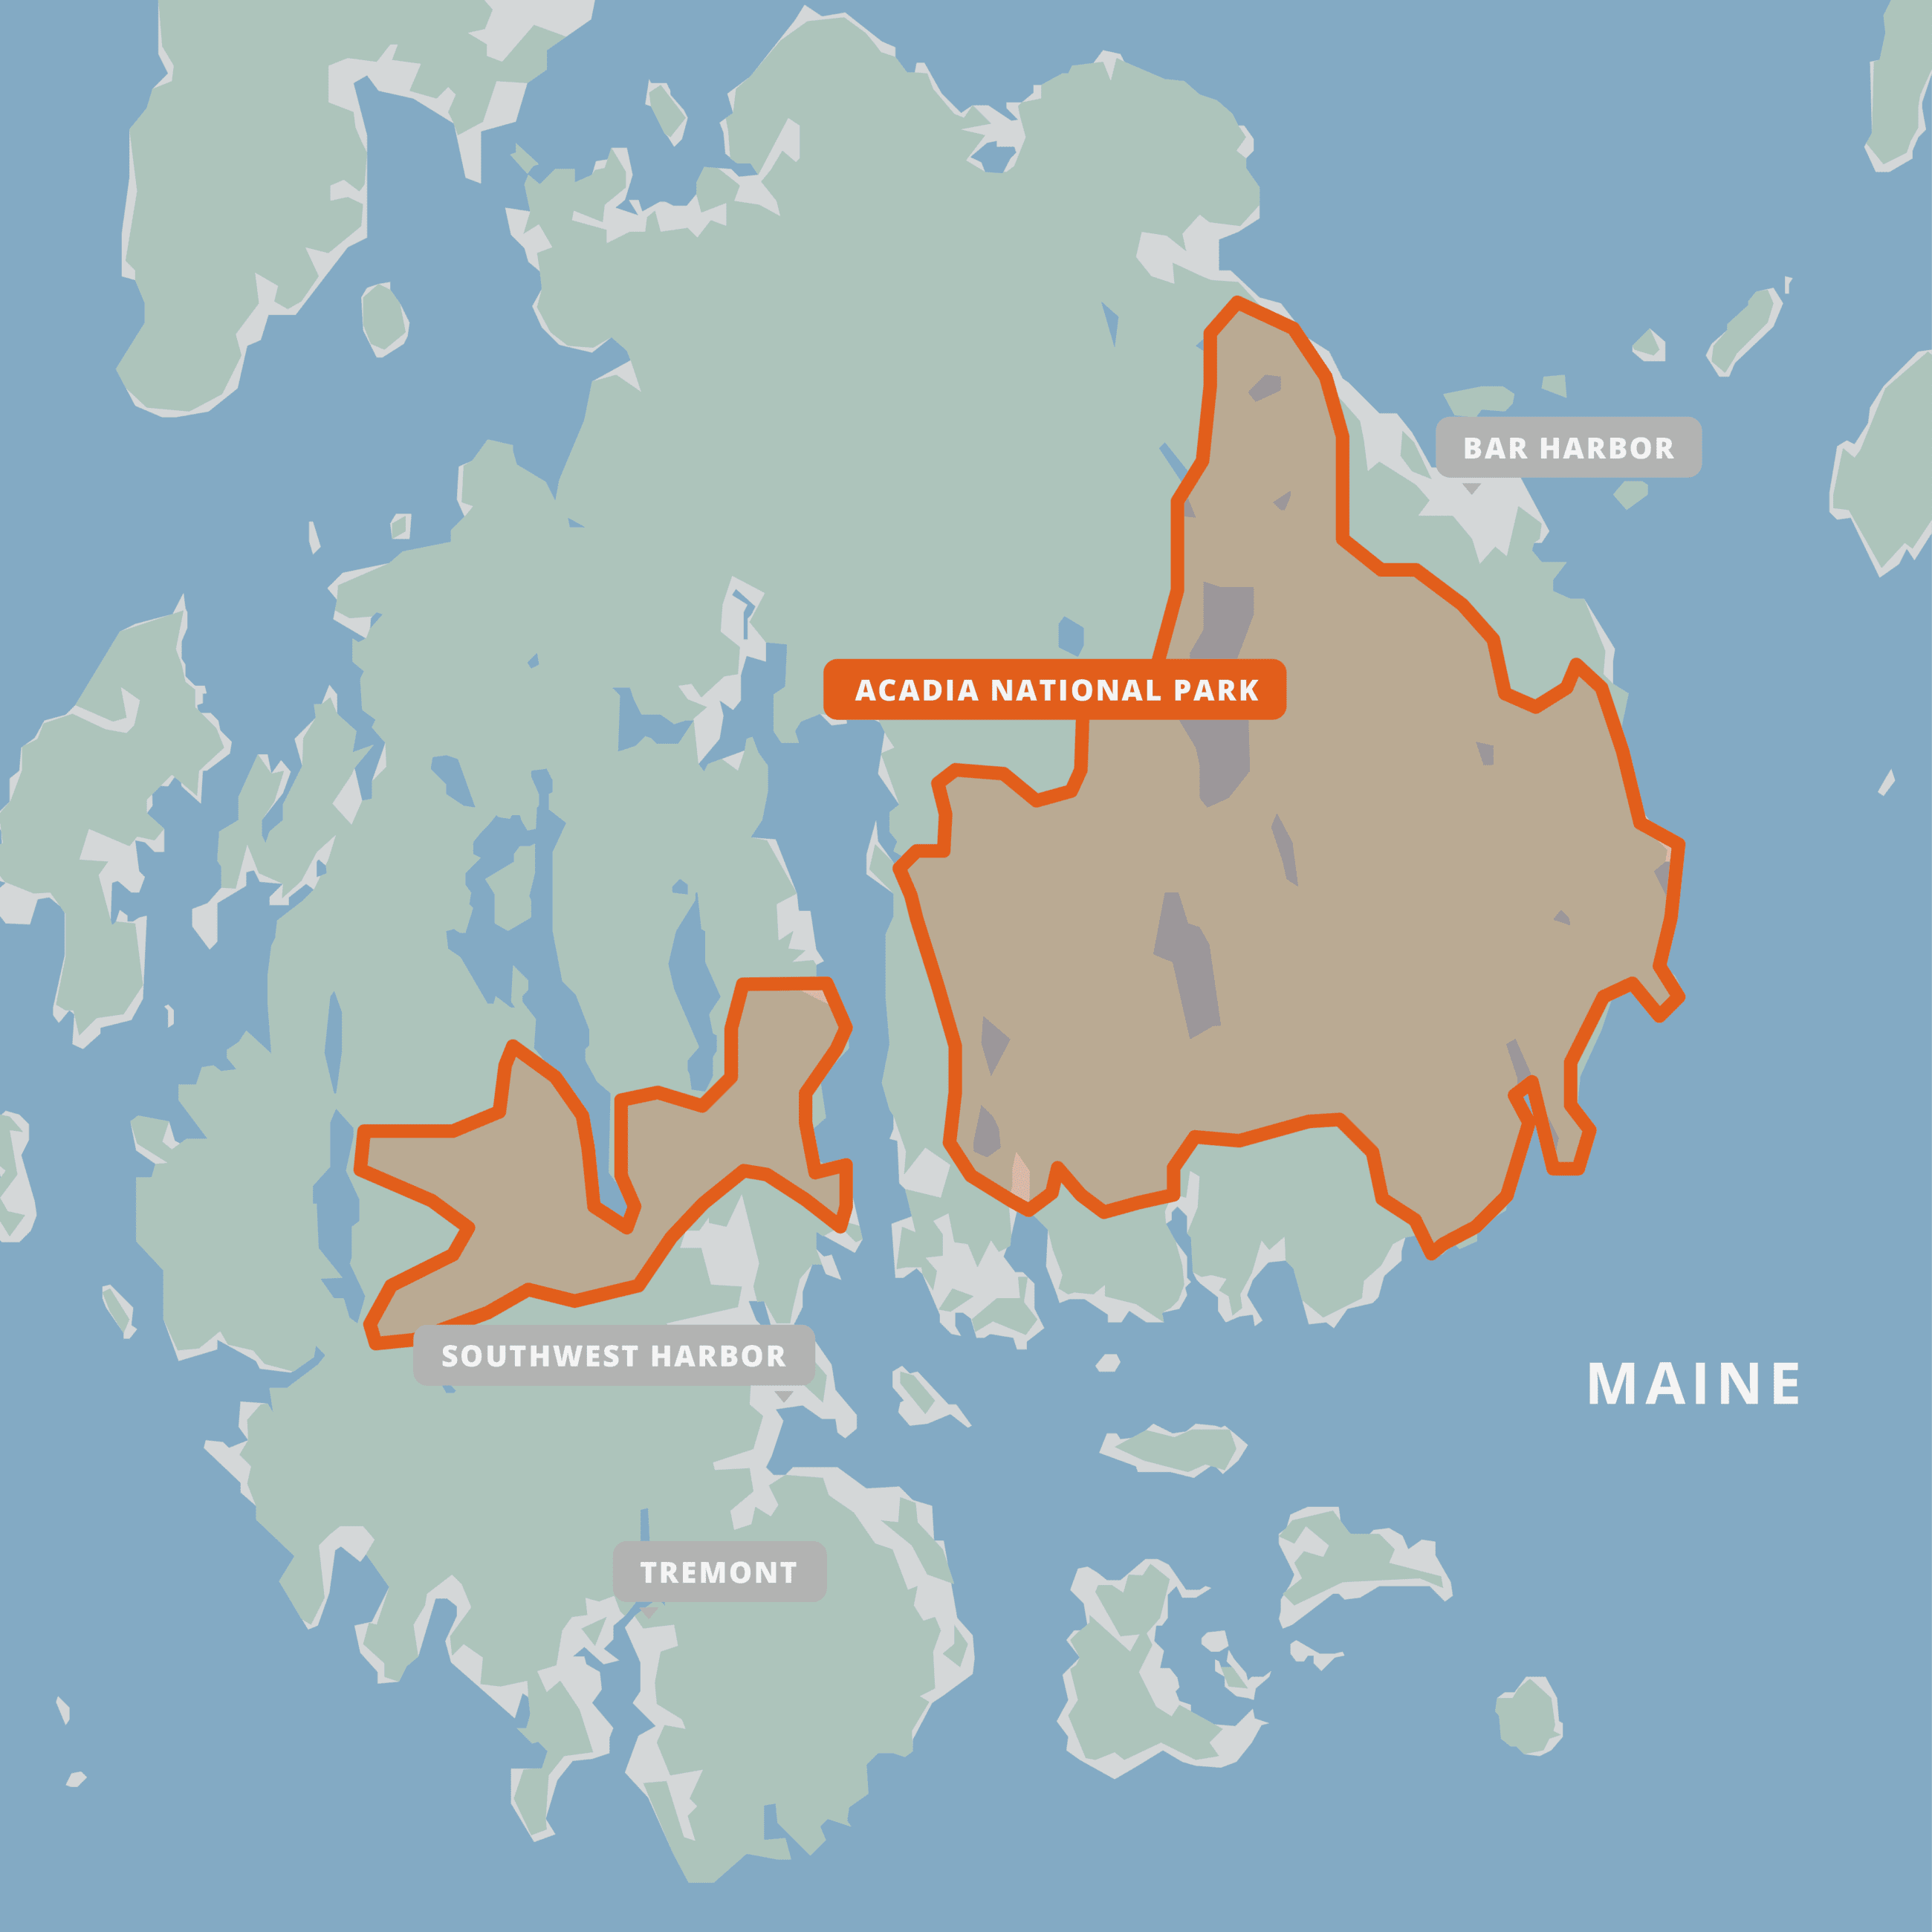 A map of Acadia National Park.